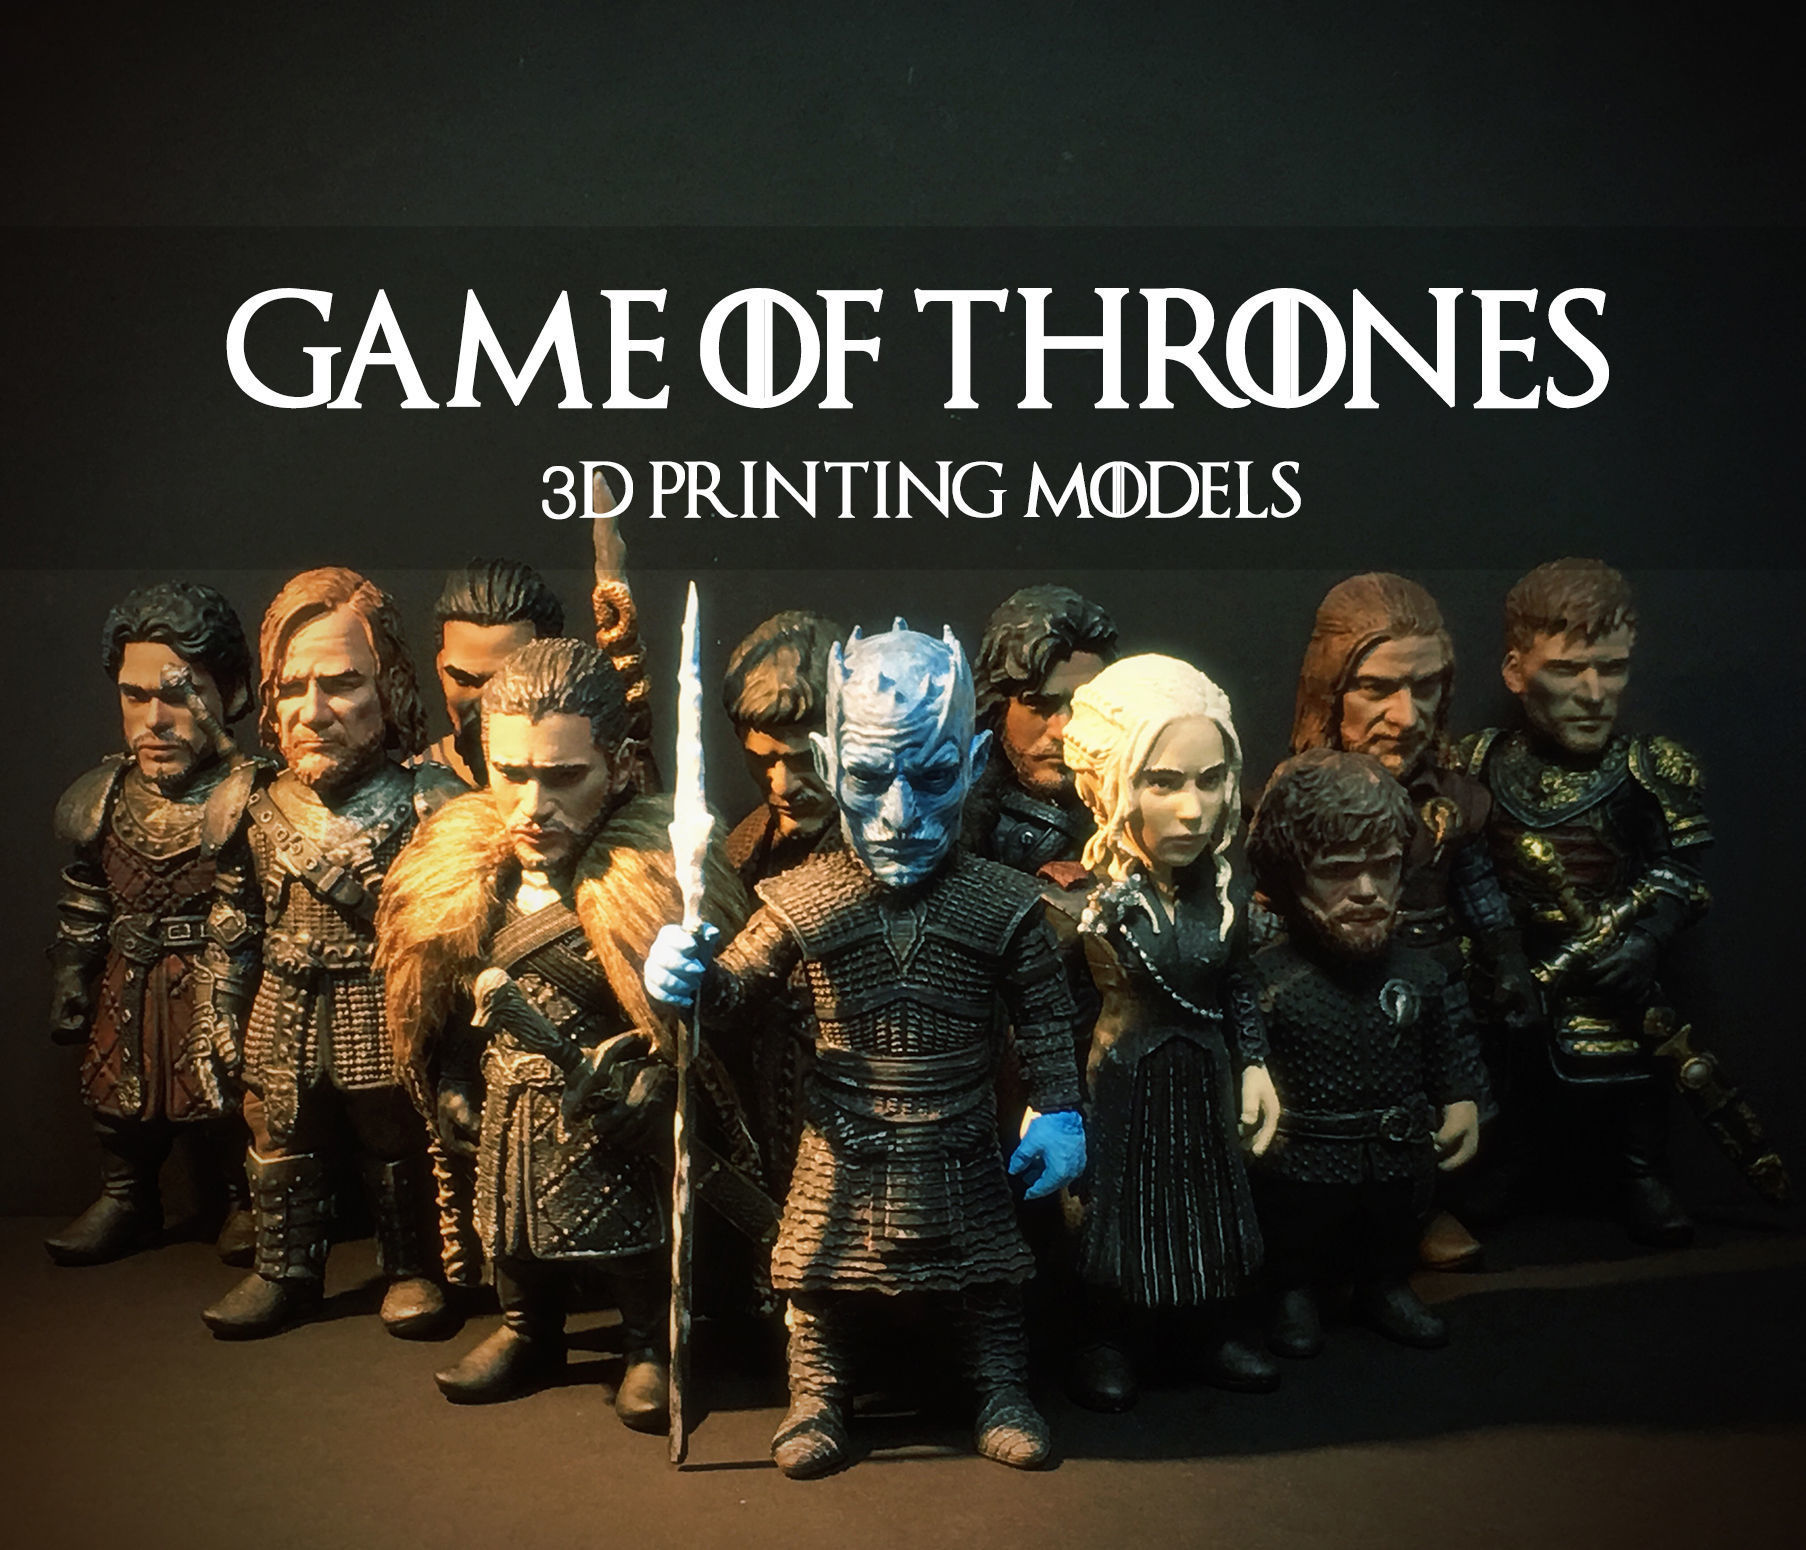 GAME OF THRONES 3D PRINTING MODEL SET